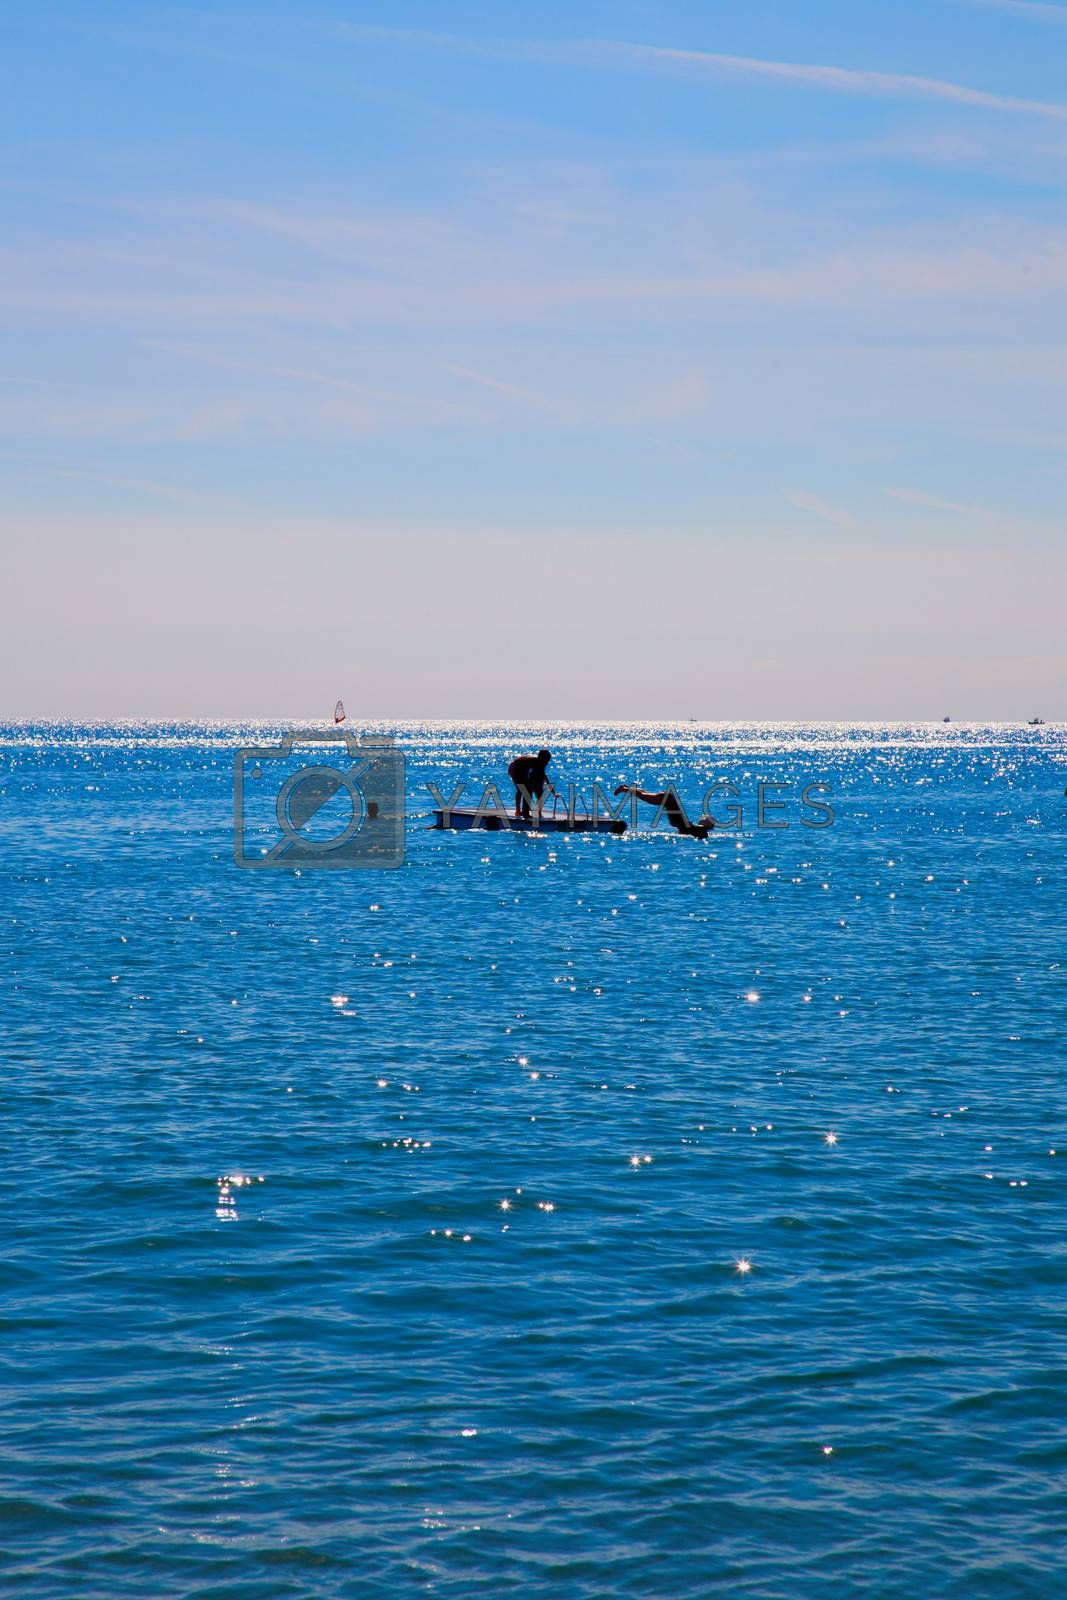 Unrecognizable people diving from a platform in the sea